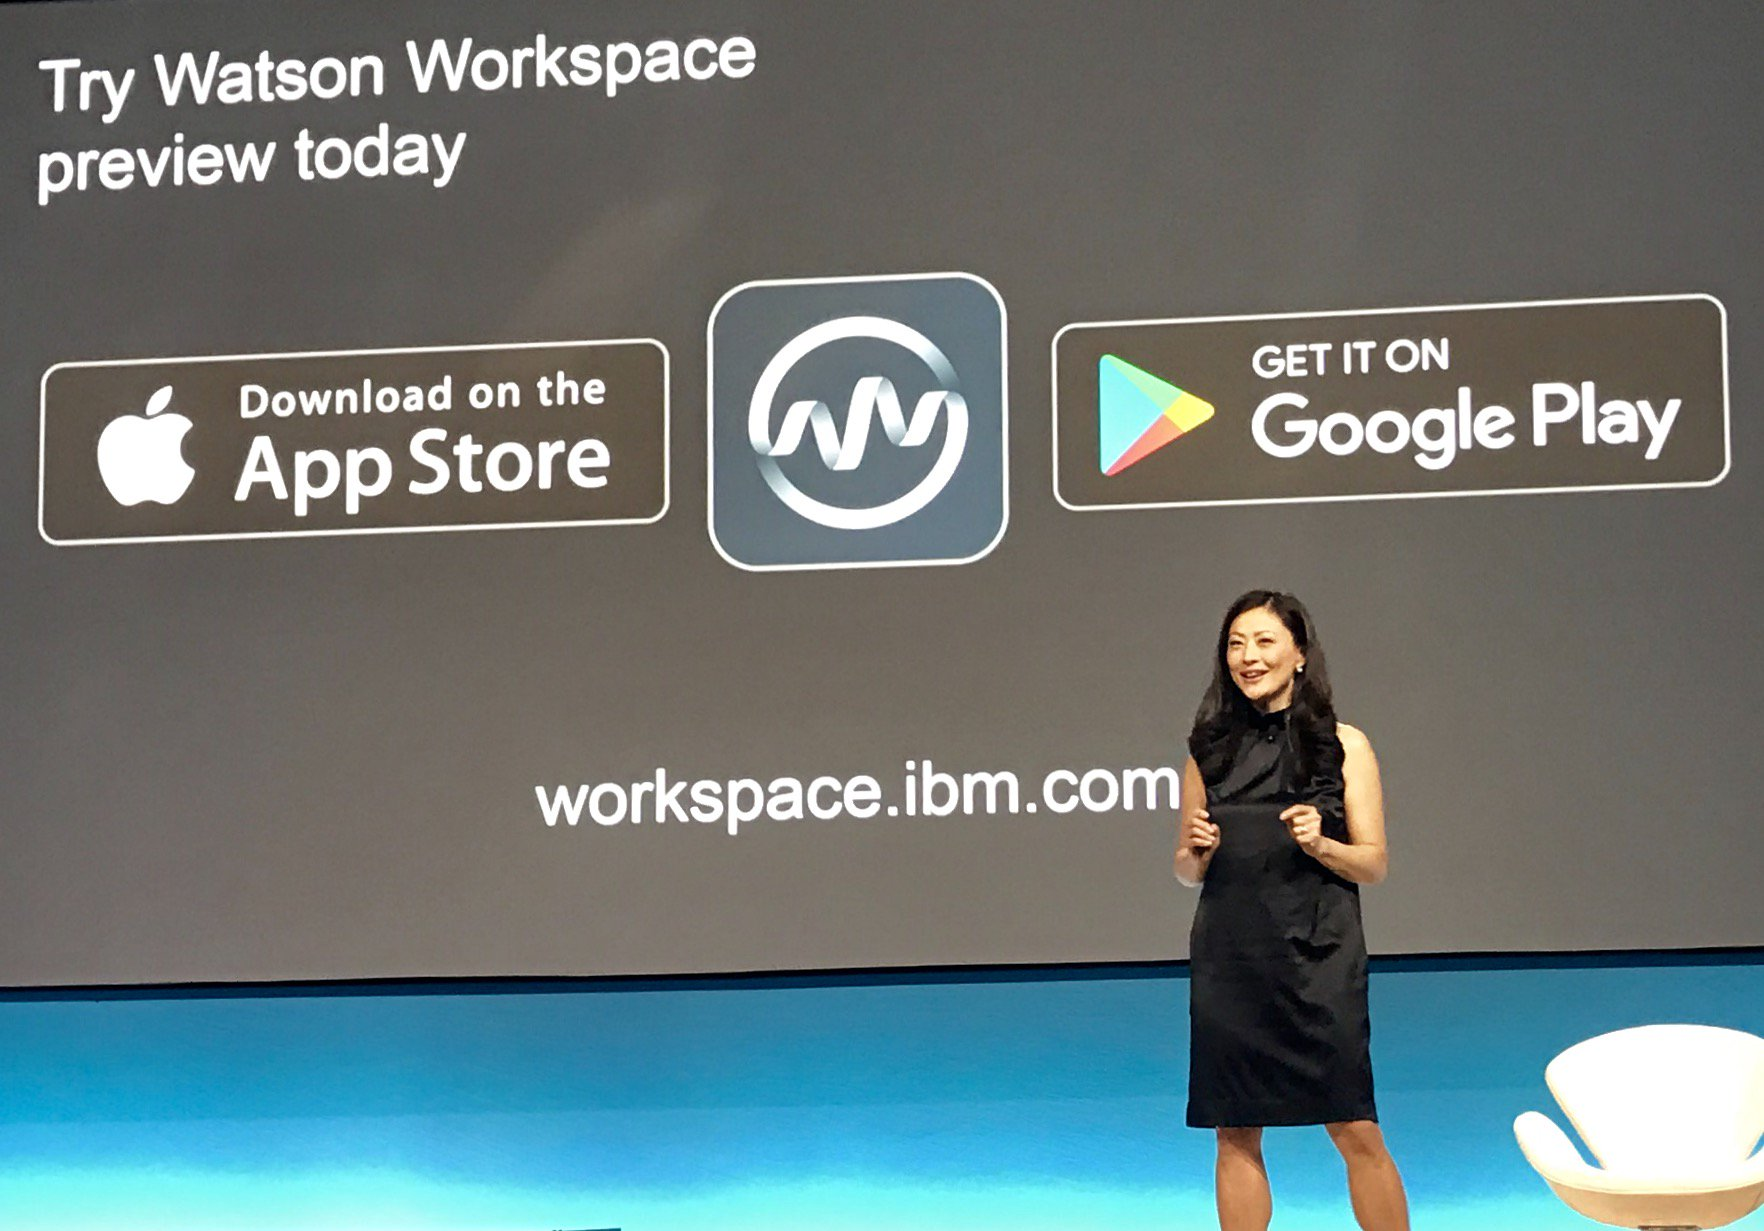 IBM Watson Workspace is live in your App Store of choice! @Inhicho invites all #IBMWoW attendees to try it out. https://t.co/kuwTPGqV1v